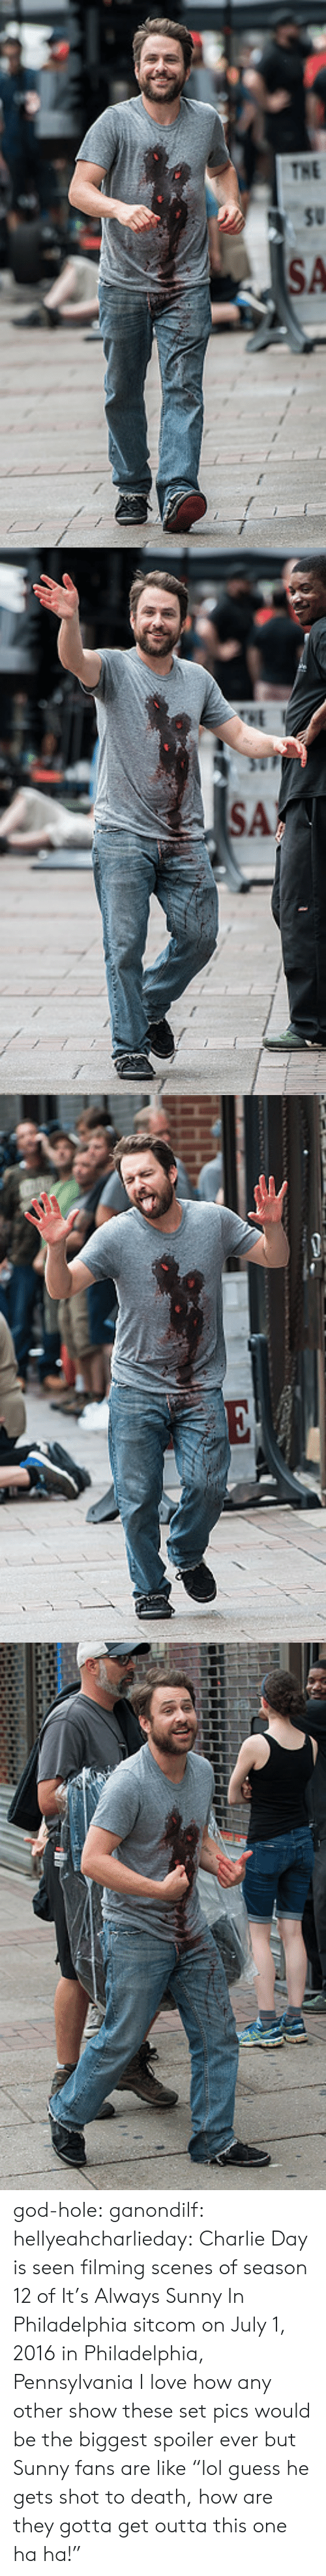 """sitcom: god-hole: ganondilf:  hellyeahcharlieday:  Charlie Day is seen filming scenes of season 12 of It's Always Sunny In Philadelphia sitcom on July 1, 2016 in Philadelphia, Pennsylvania  I love how any other show these set pics would be the biggest spoiler ever but Sunny fans are like """"lol guess he gets shot to death, how are they gotta get outta this one ha ha!"""""""